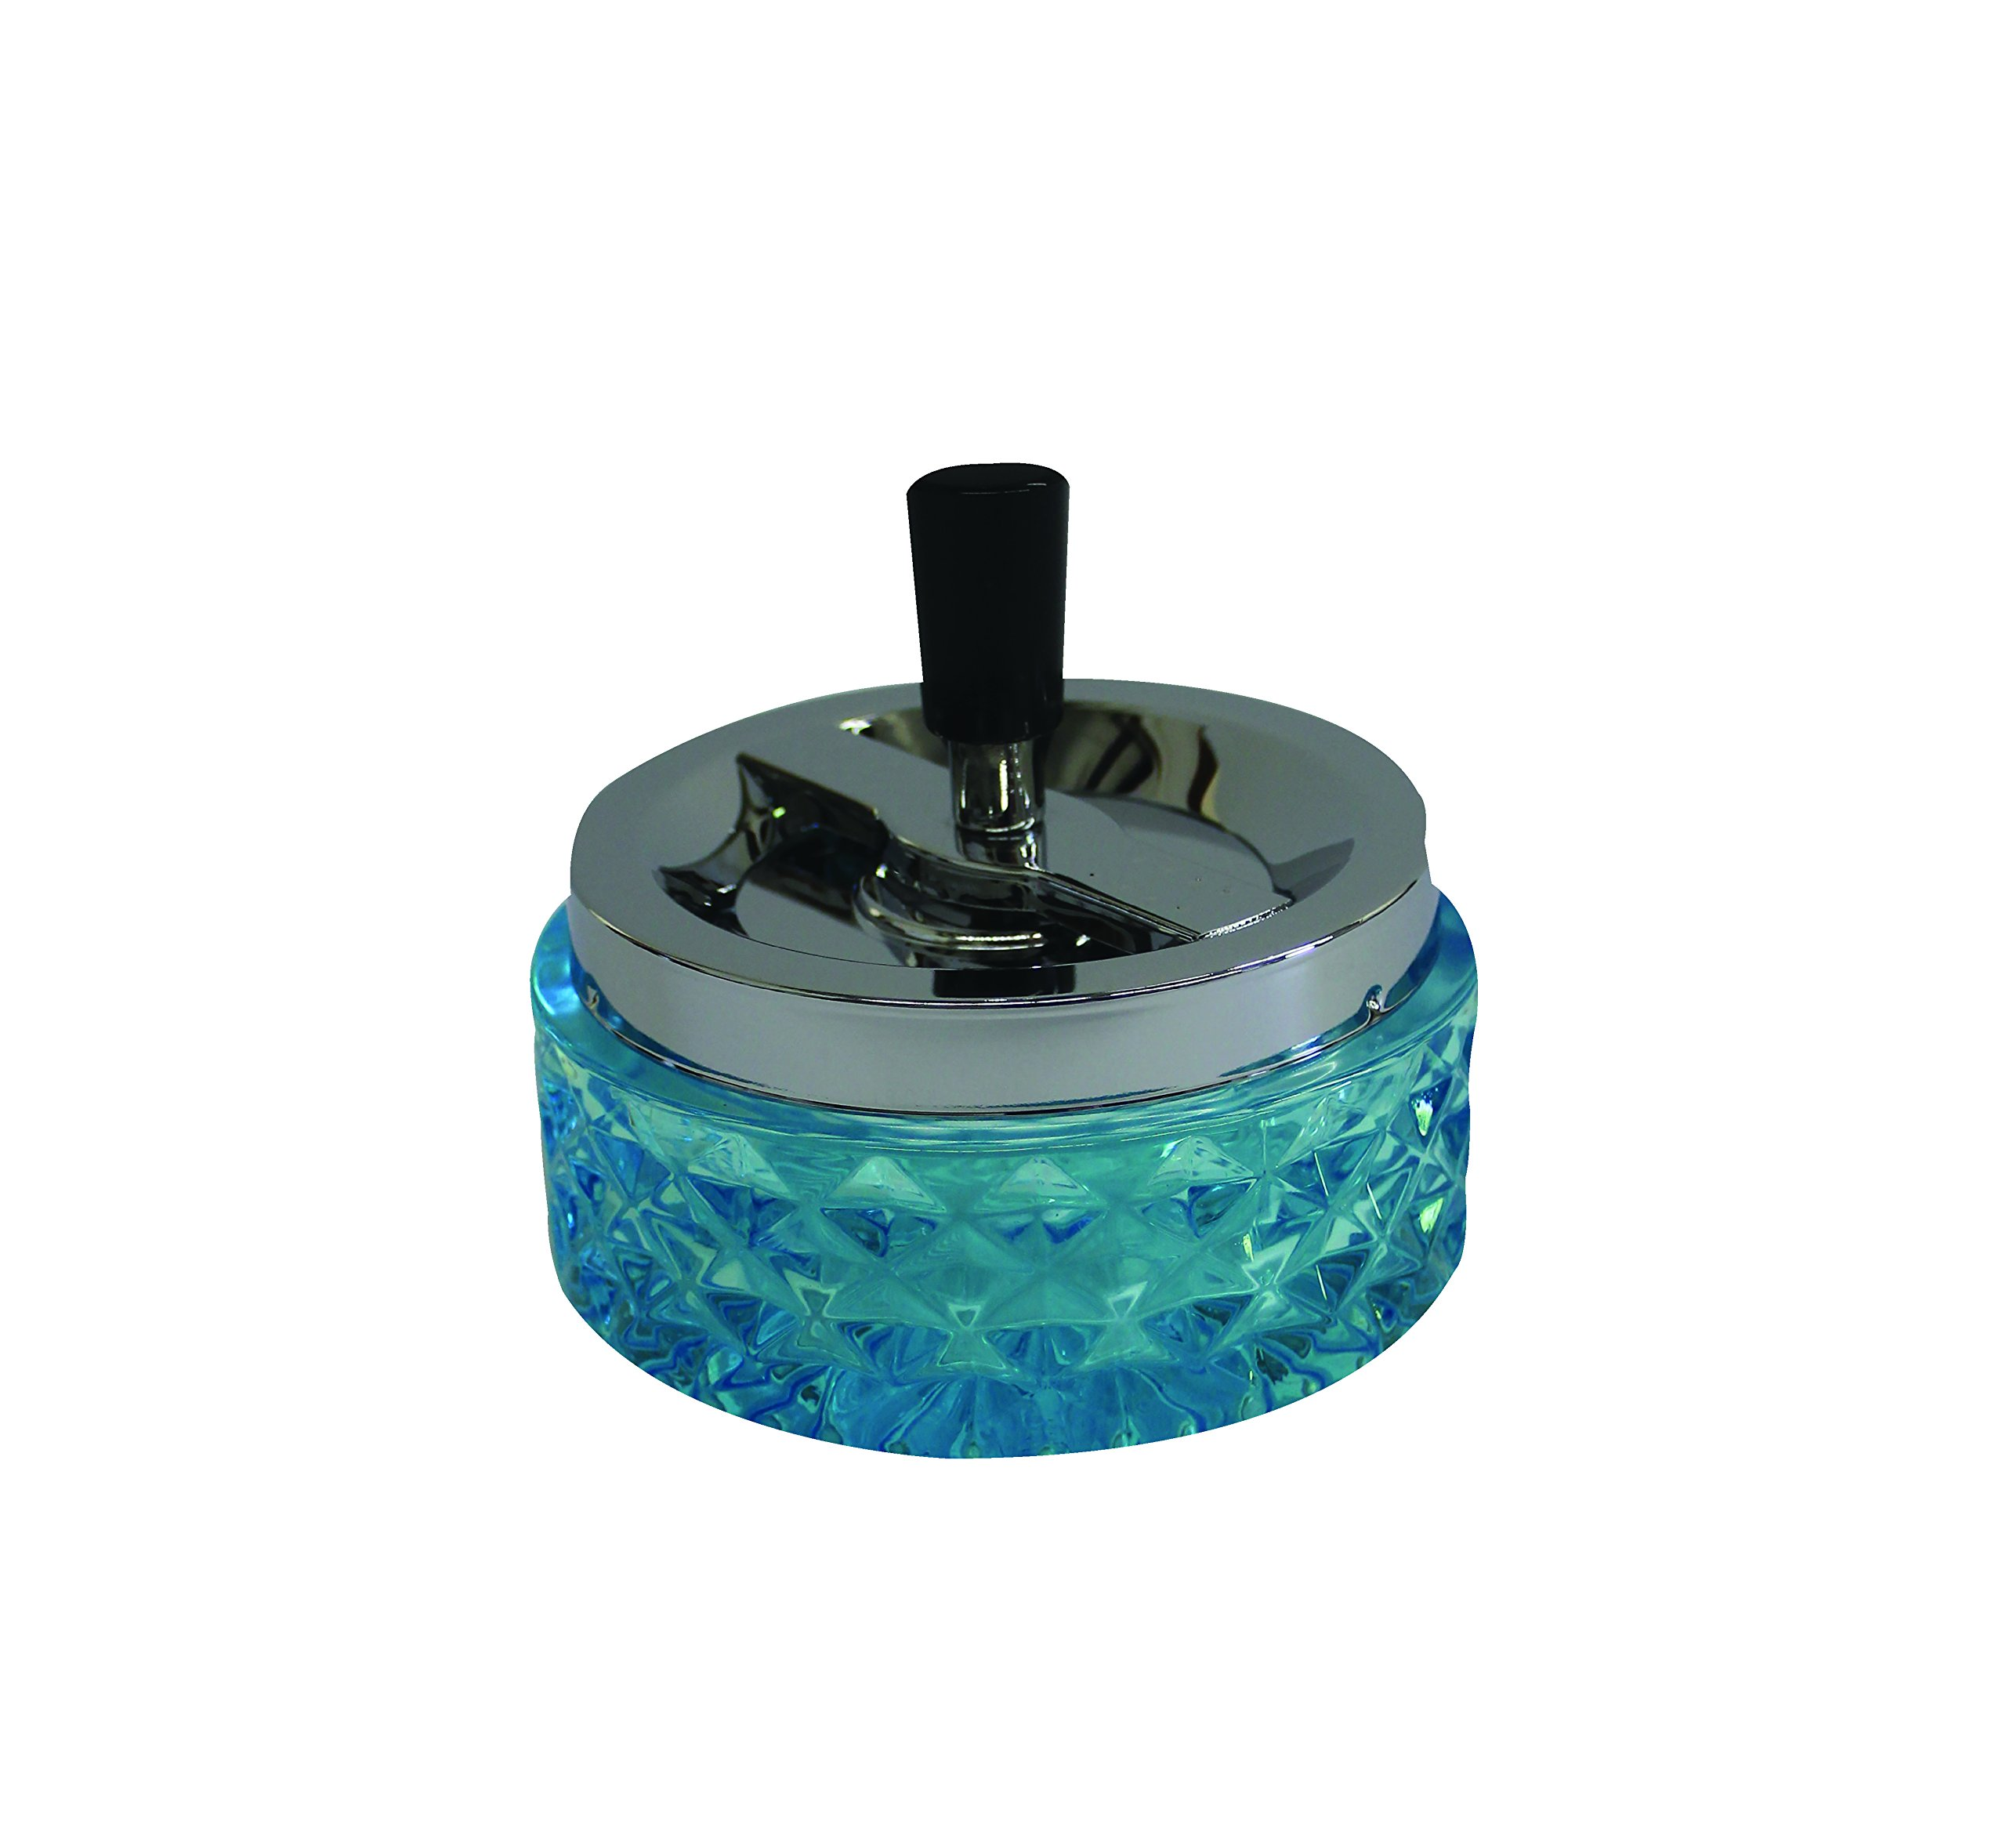 4.75'' Round Push Down Glass Ashtray with Spinning Tray ~ Choose Your Own Color (Aqua Blue)